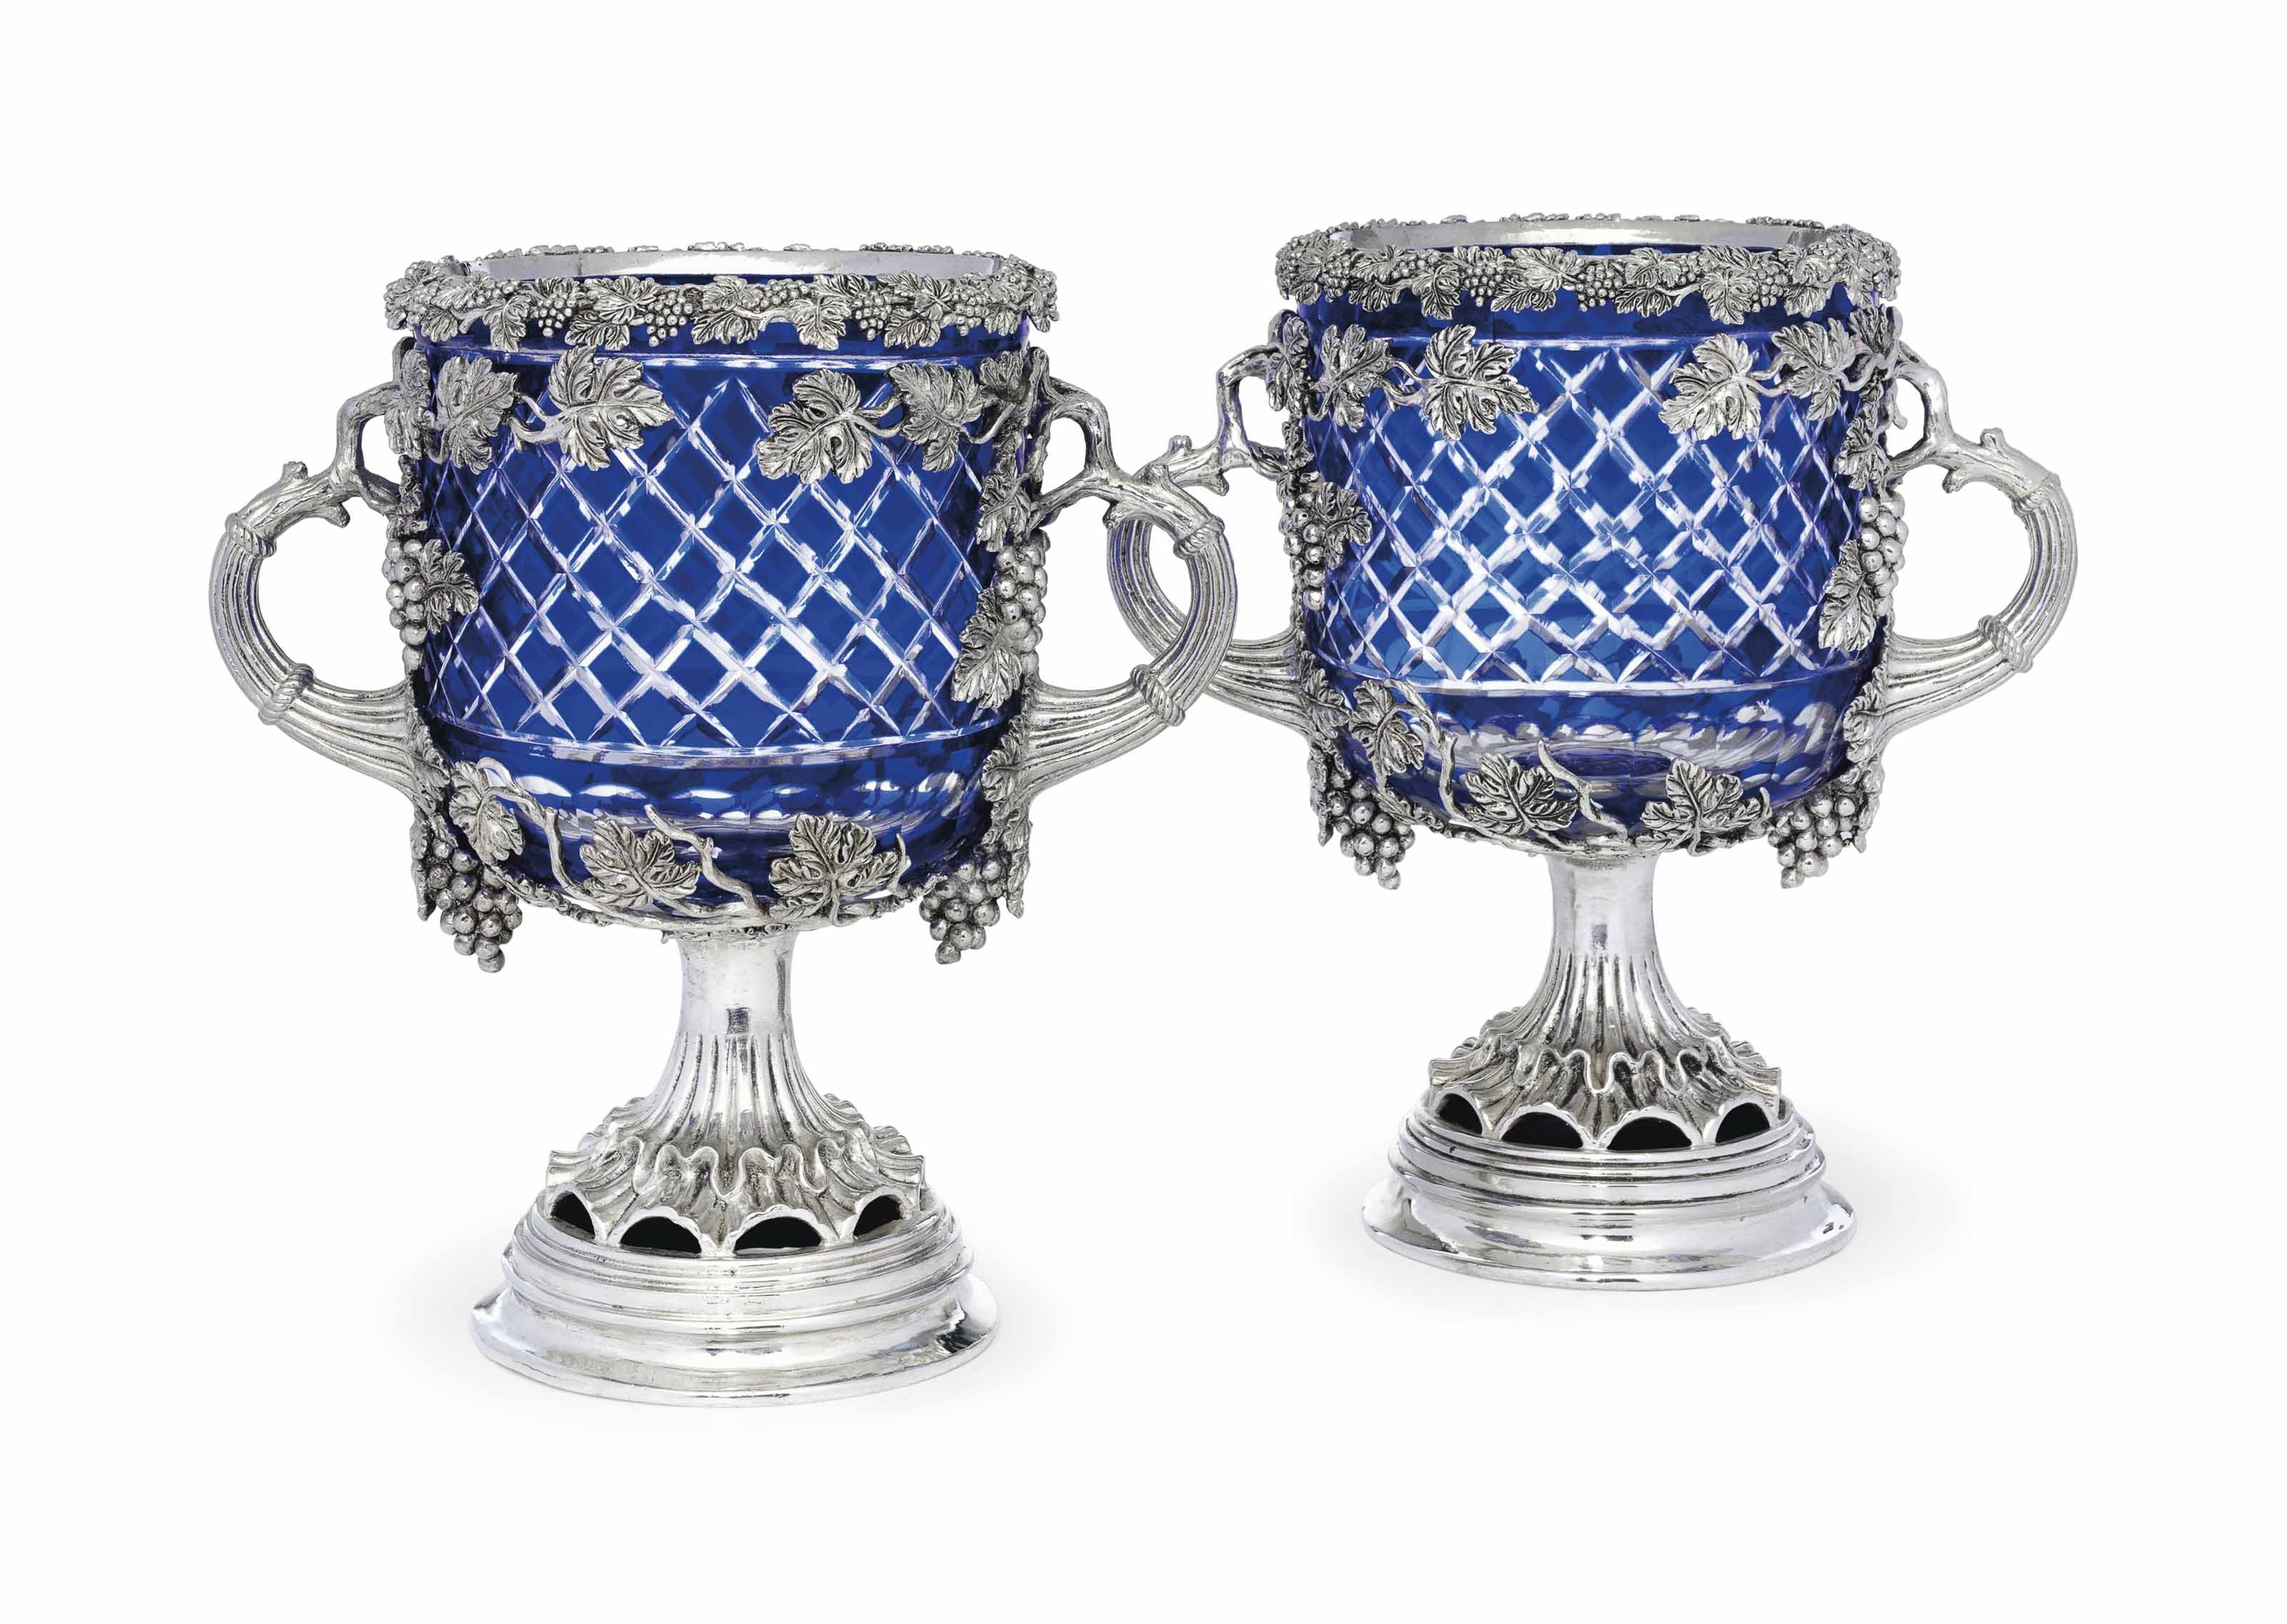 A PAIR OF SILVER-PLATE MOUNTED